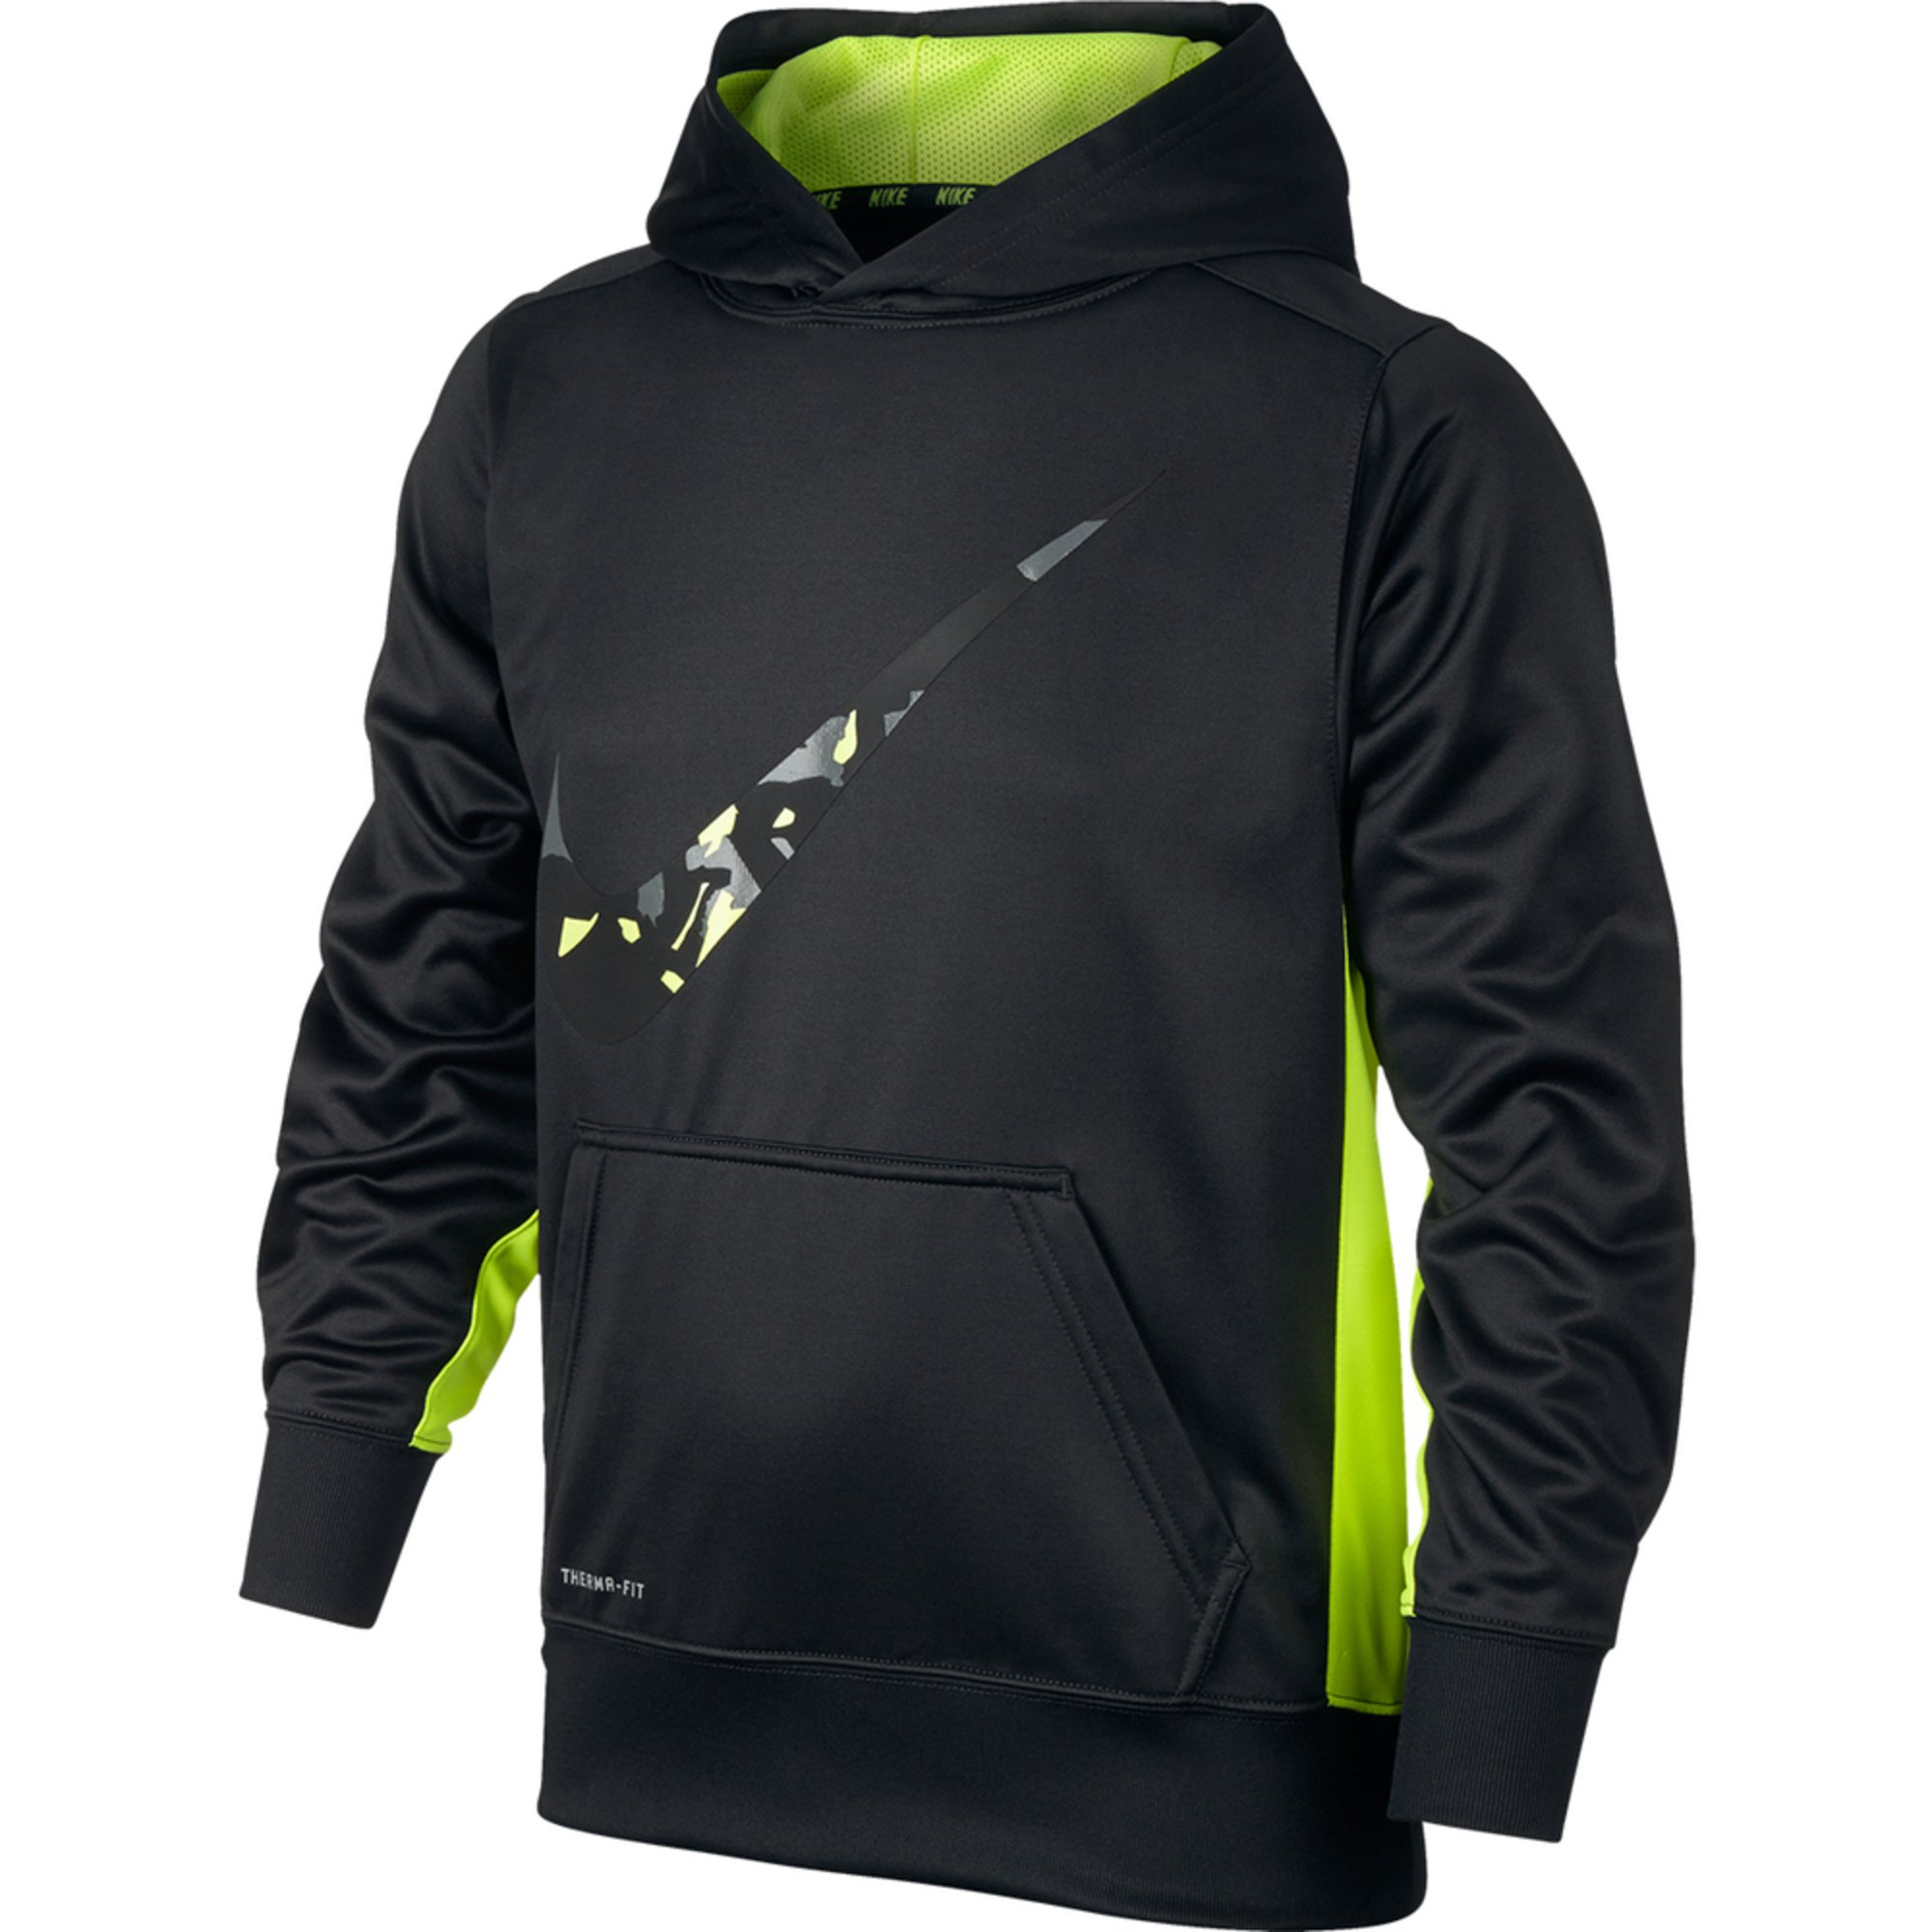 Nike Boyu0026#39;s Swoosh Hoddie | Boysu0026#39; Clothing 8-20 | Kids - Shop Your Navy Exchange - Official Site